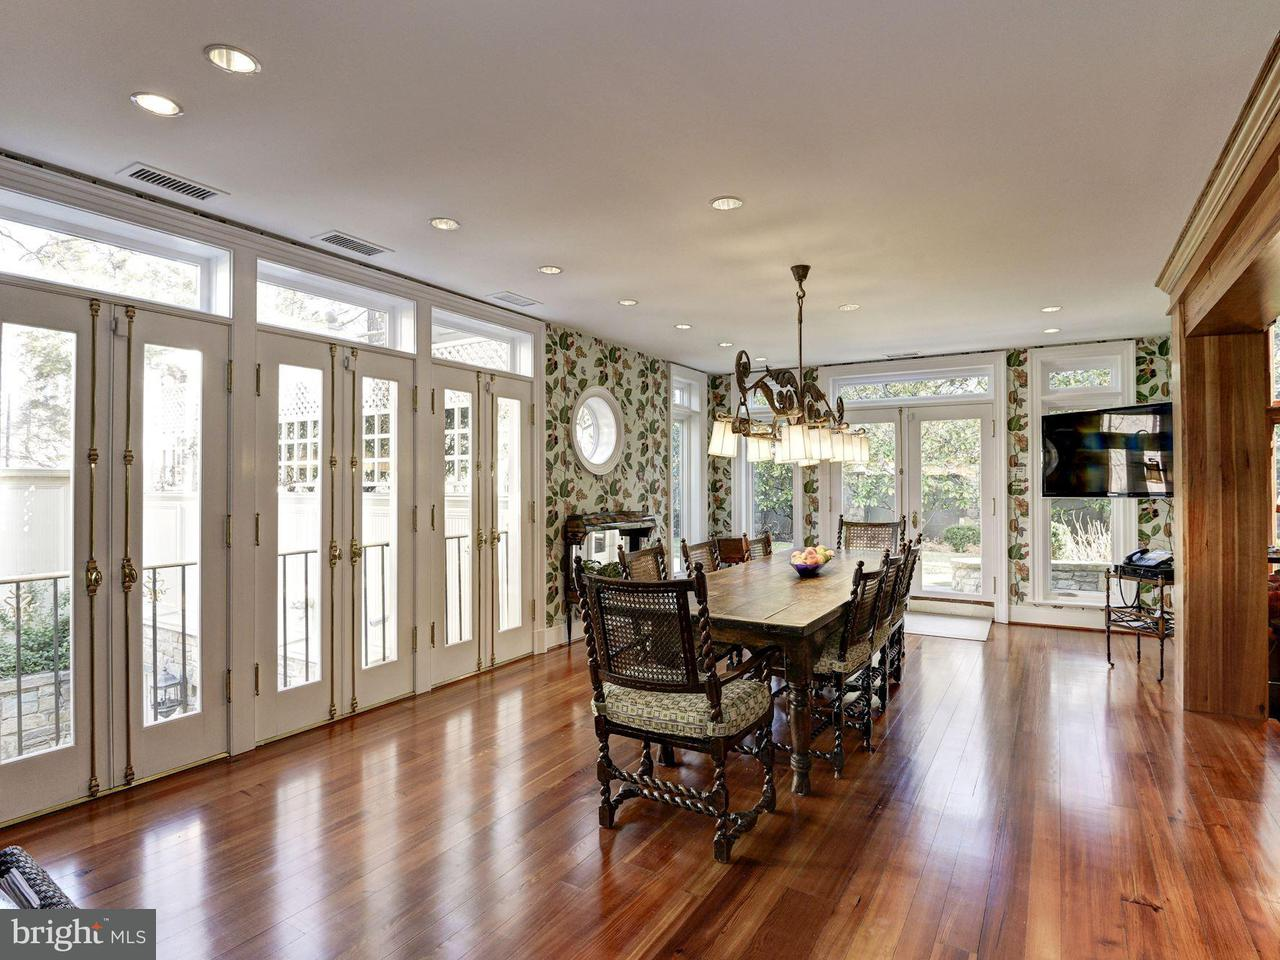 Additional photo for property listing at 3005 45TH ST NW 3005 45TH ST NW Washington, District Of Columbia 20016 United States